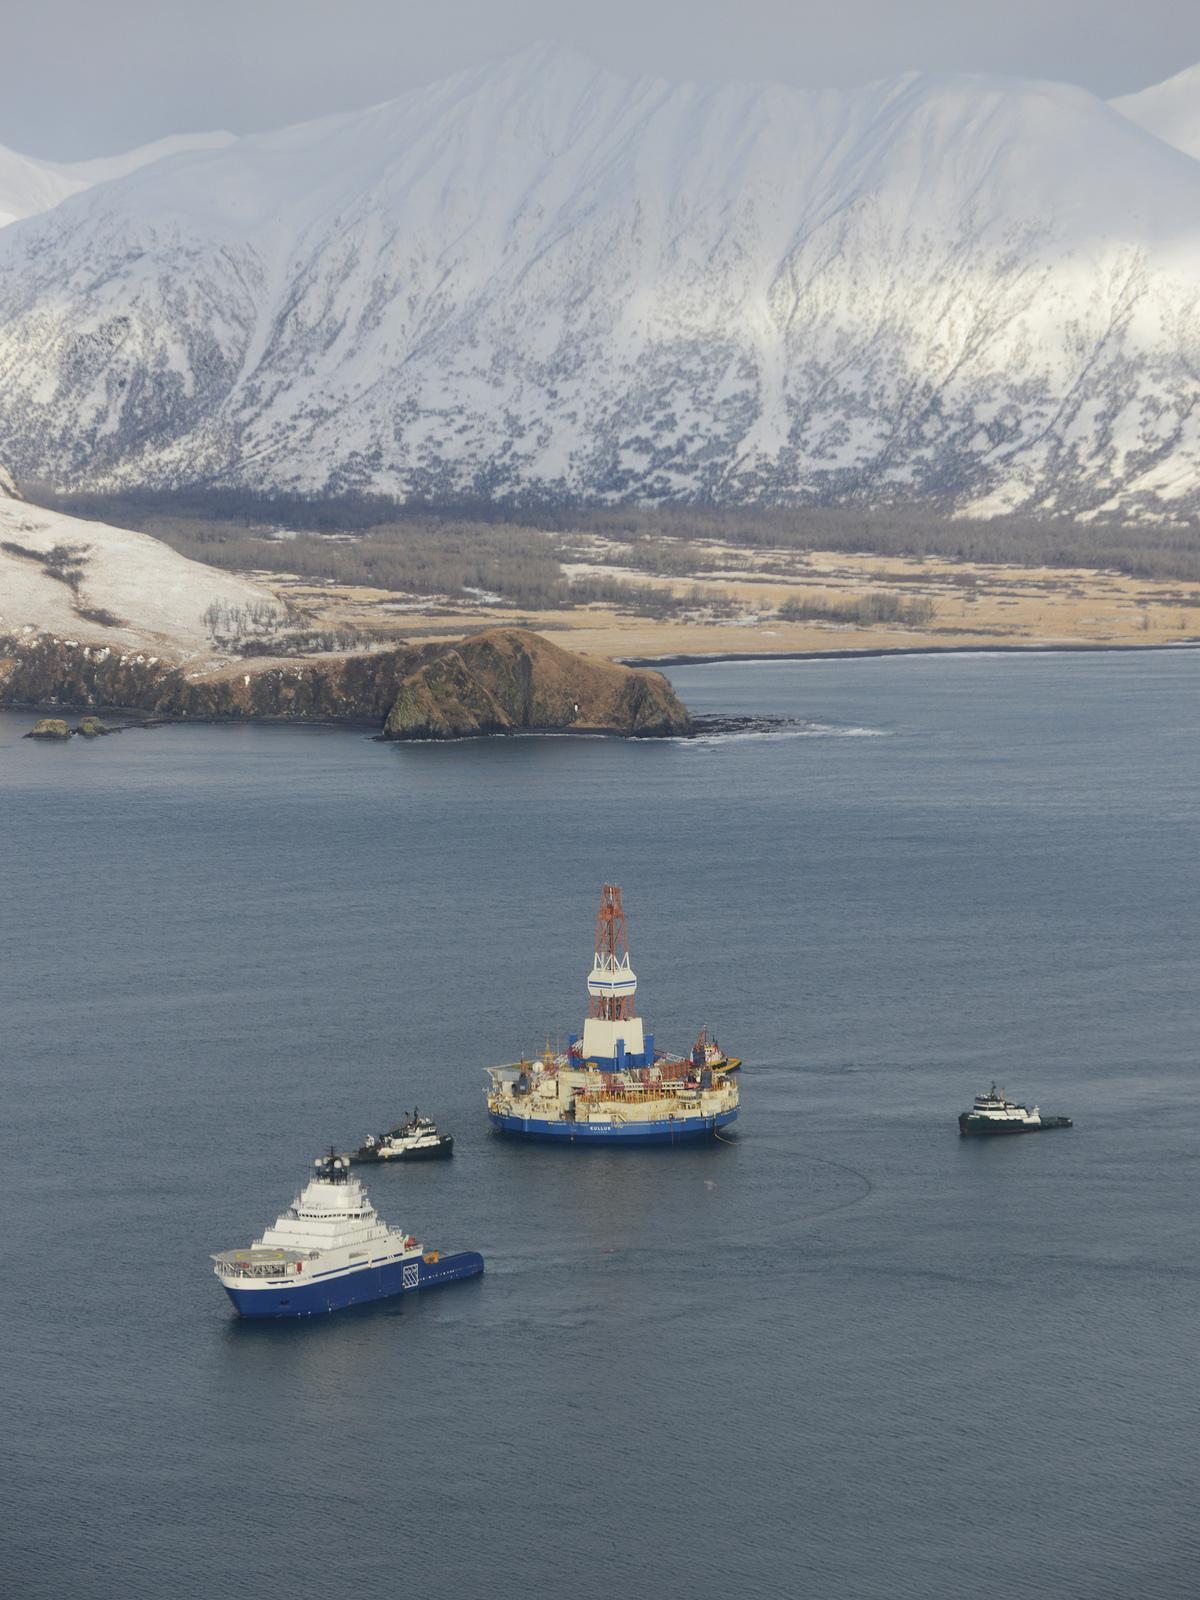 alaska oil drilling The drill rig kulluk floats near kodiak island in alaska's kiliuda bay in 2013 the first oil and gas production wells in federal arctic waters have been approved by the interior department.